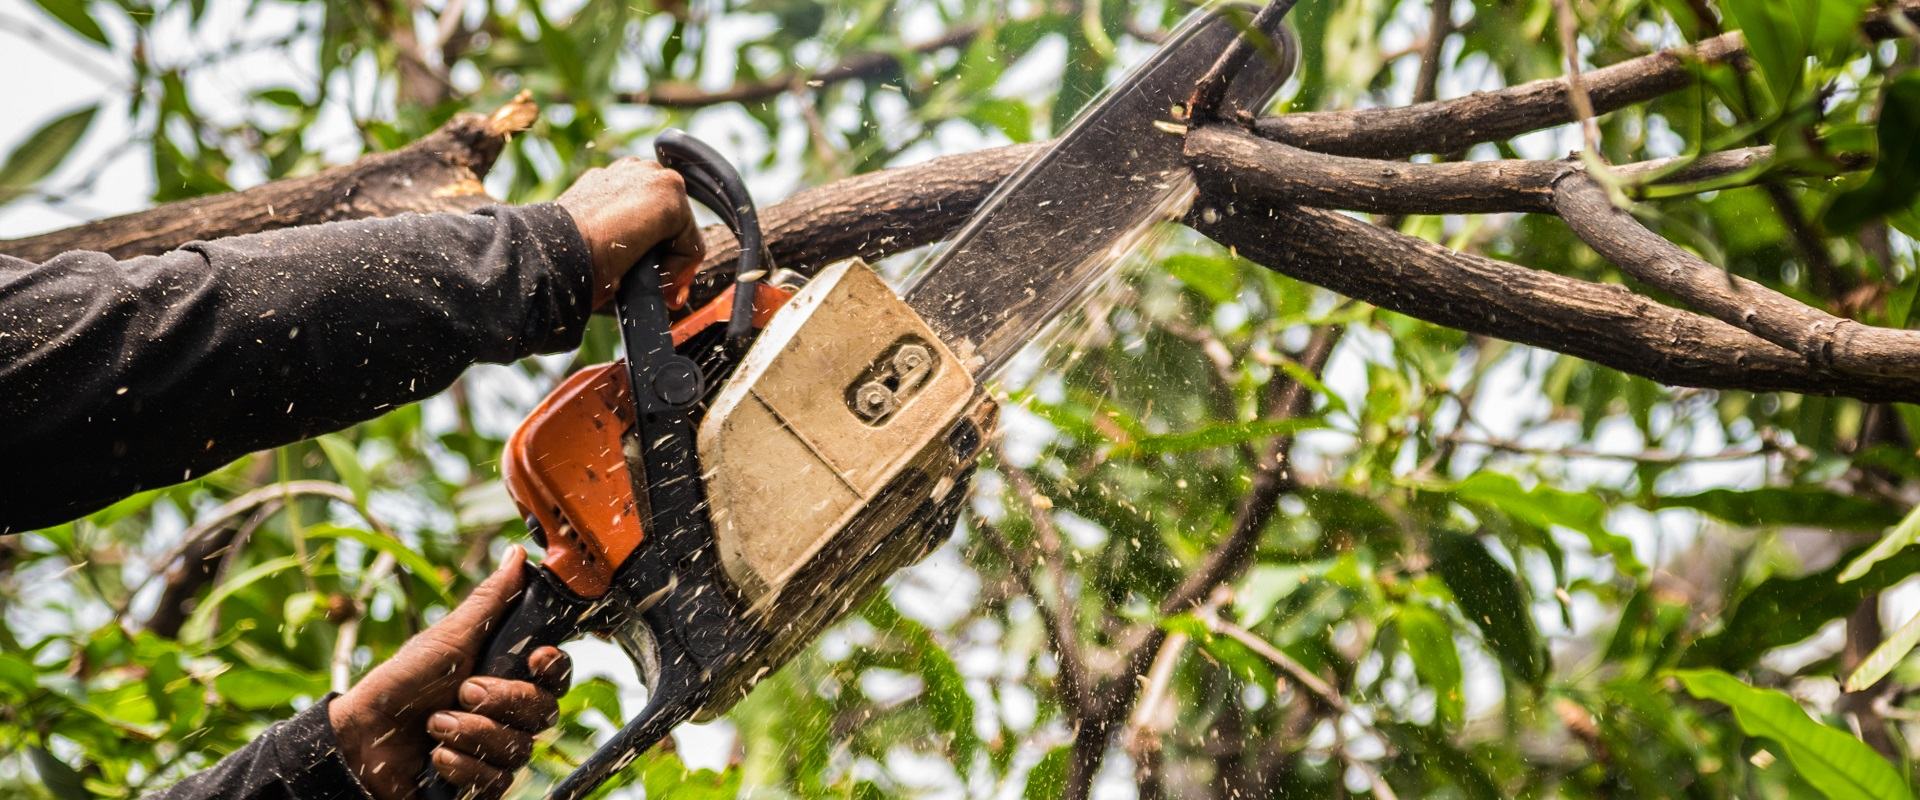 What Are The Dangers of Taking Down A Tree Without A Professional?